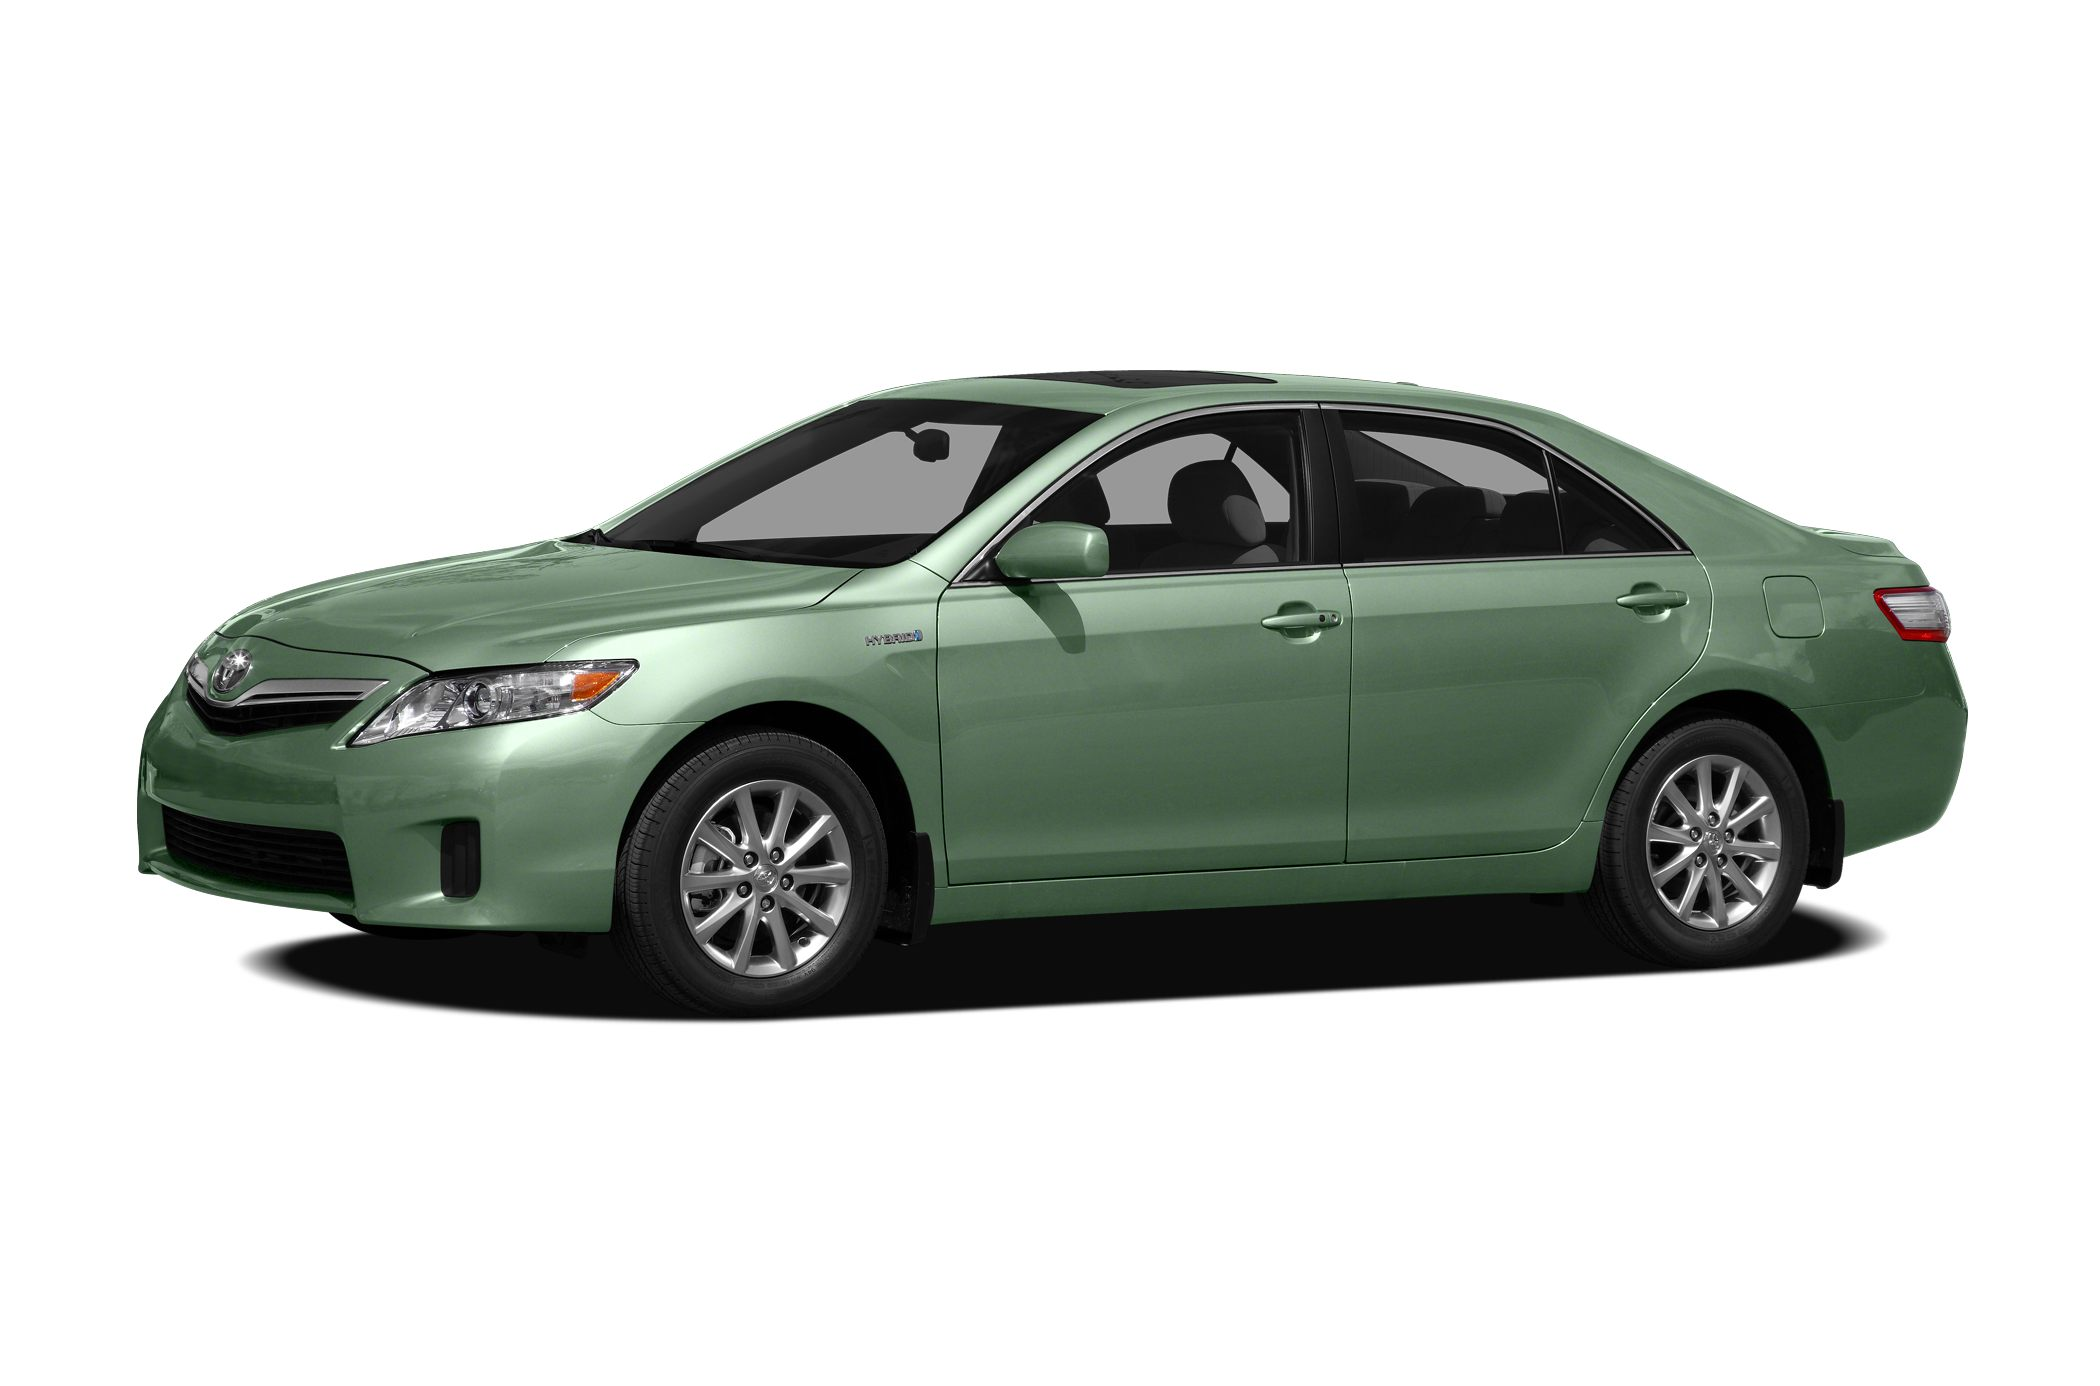 2010 Toyota Camry Hybrid Sedan for sale in North Augusta for $17,977 with 38,397 miles.